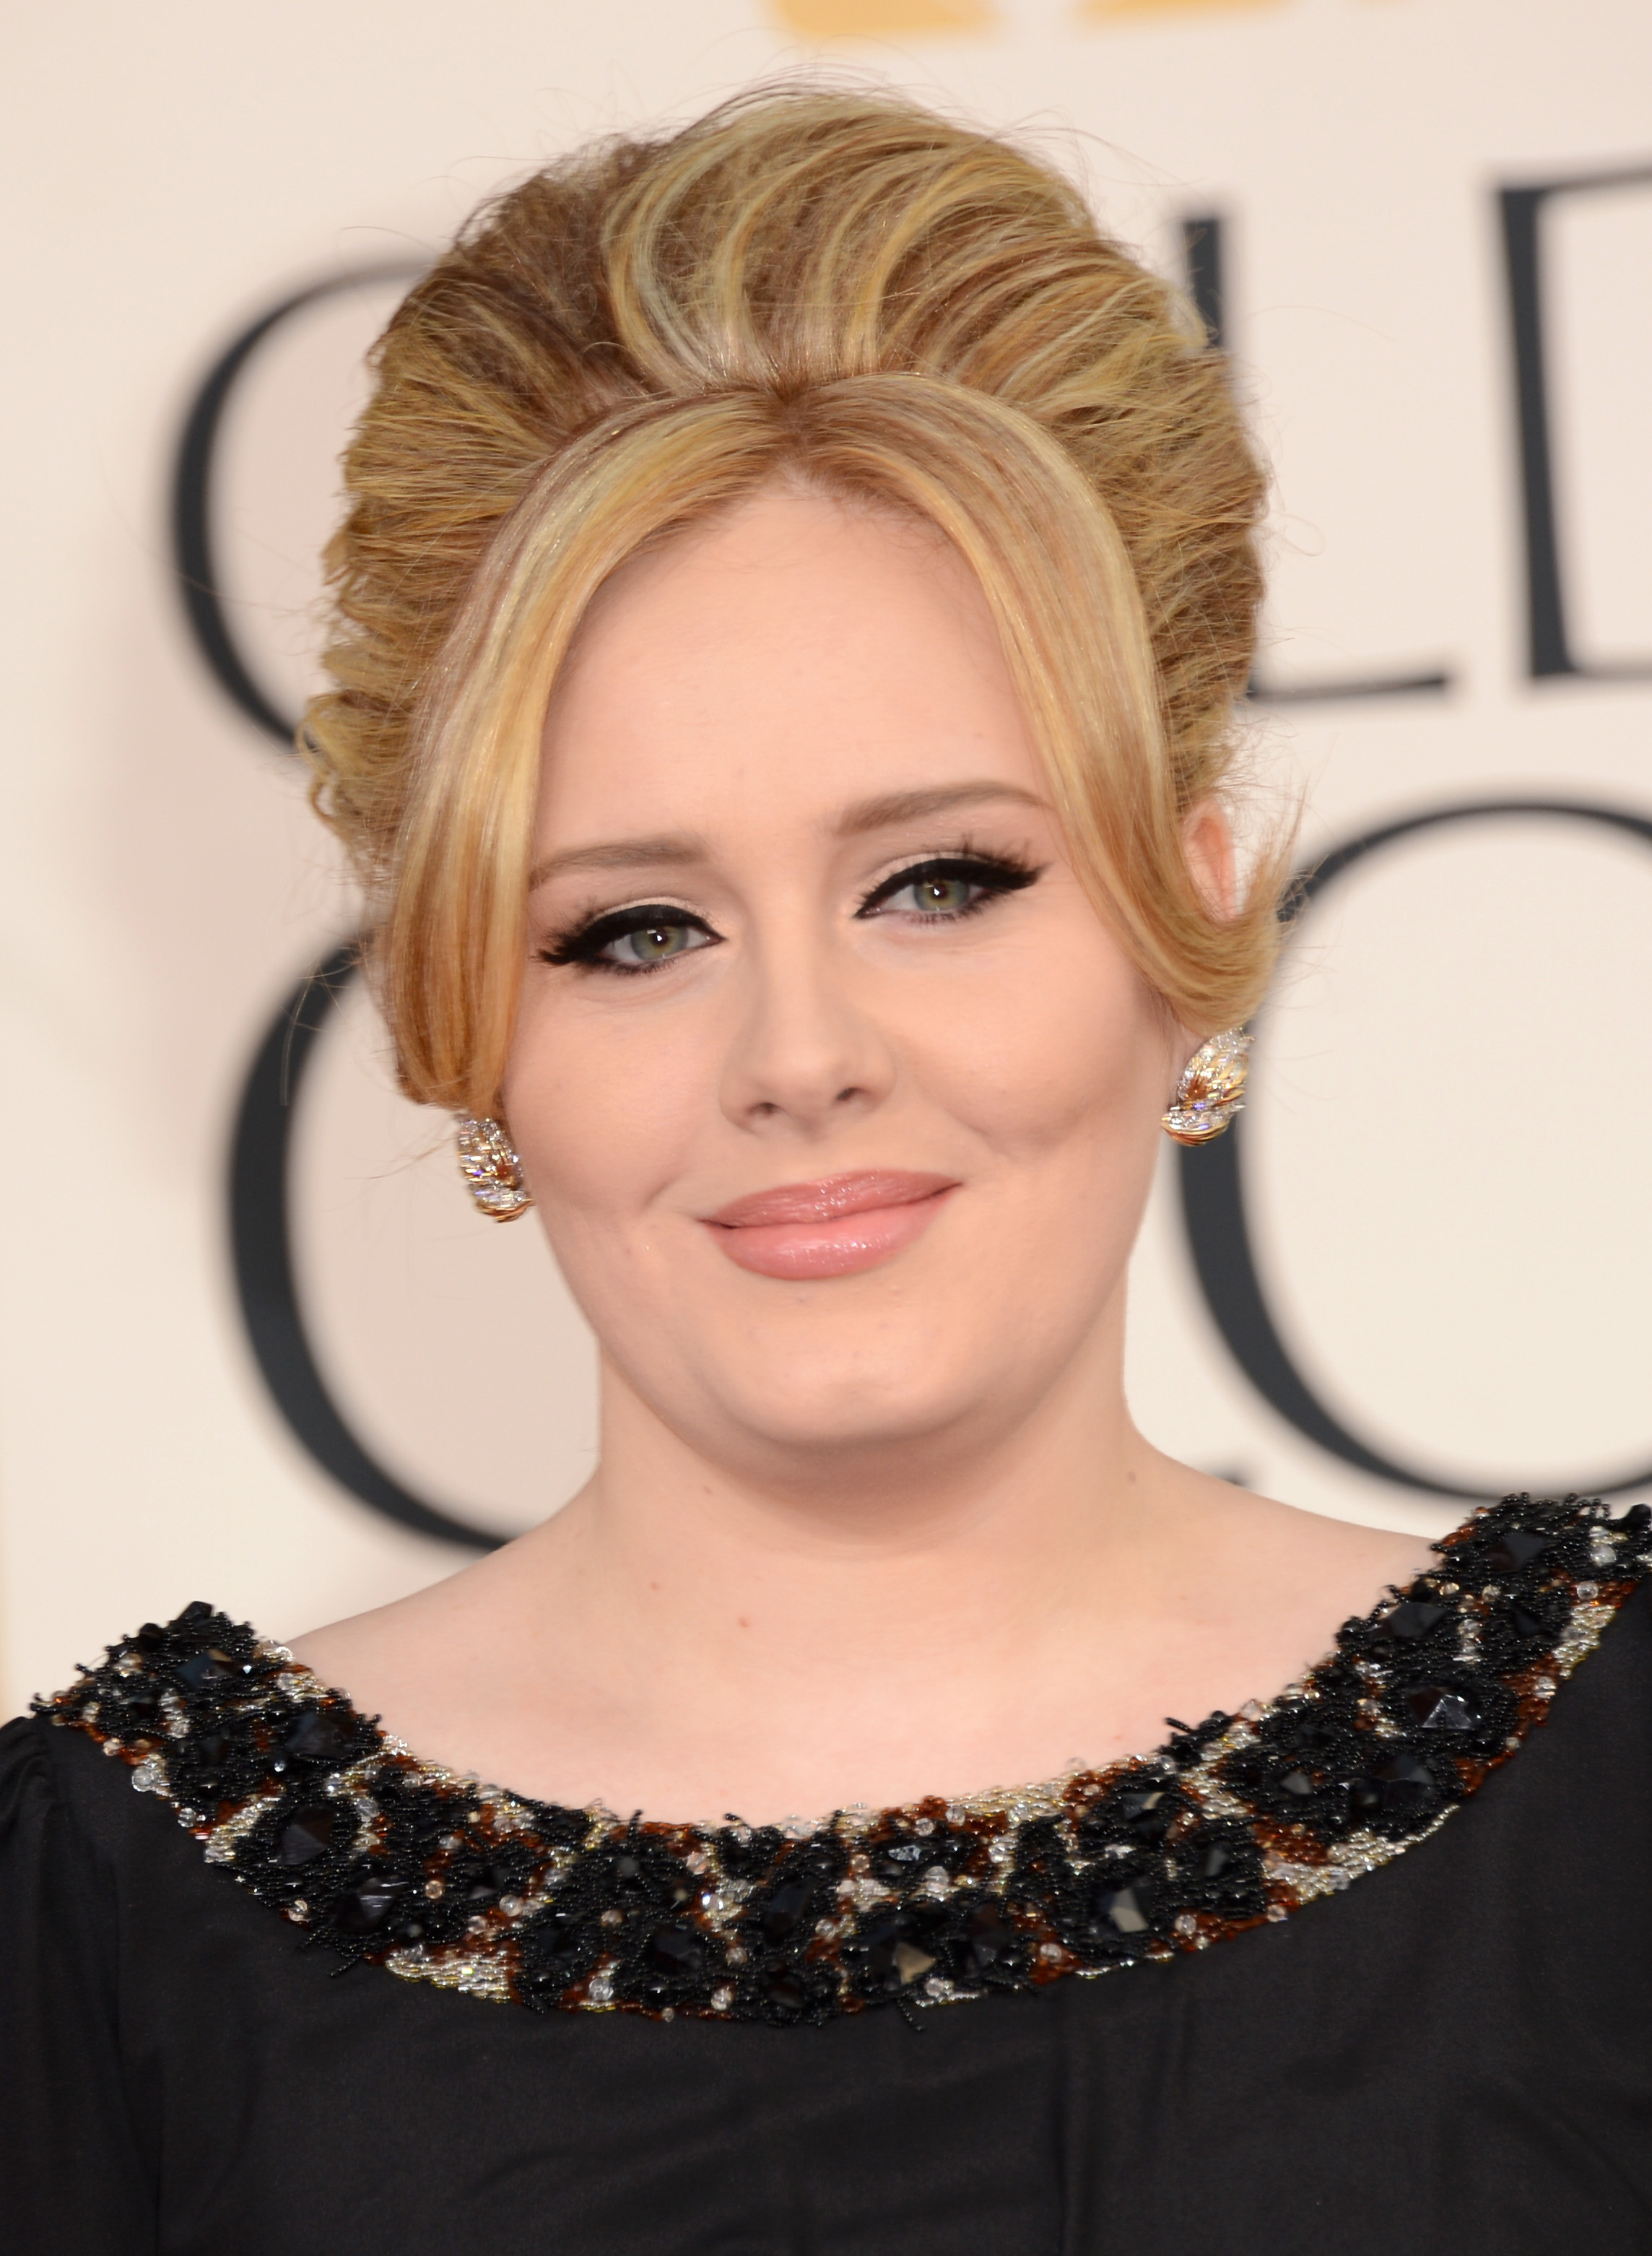 Adele HD Iphone